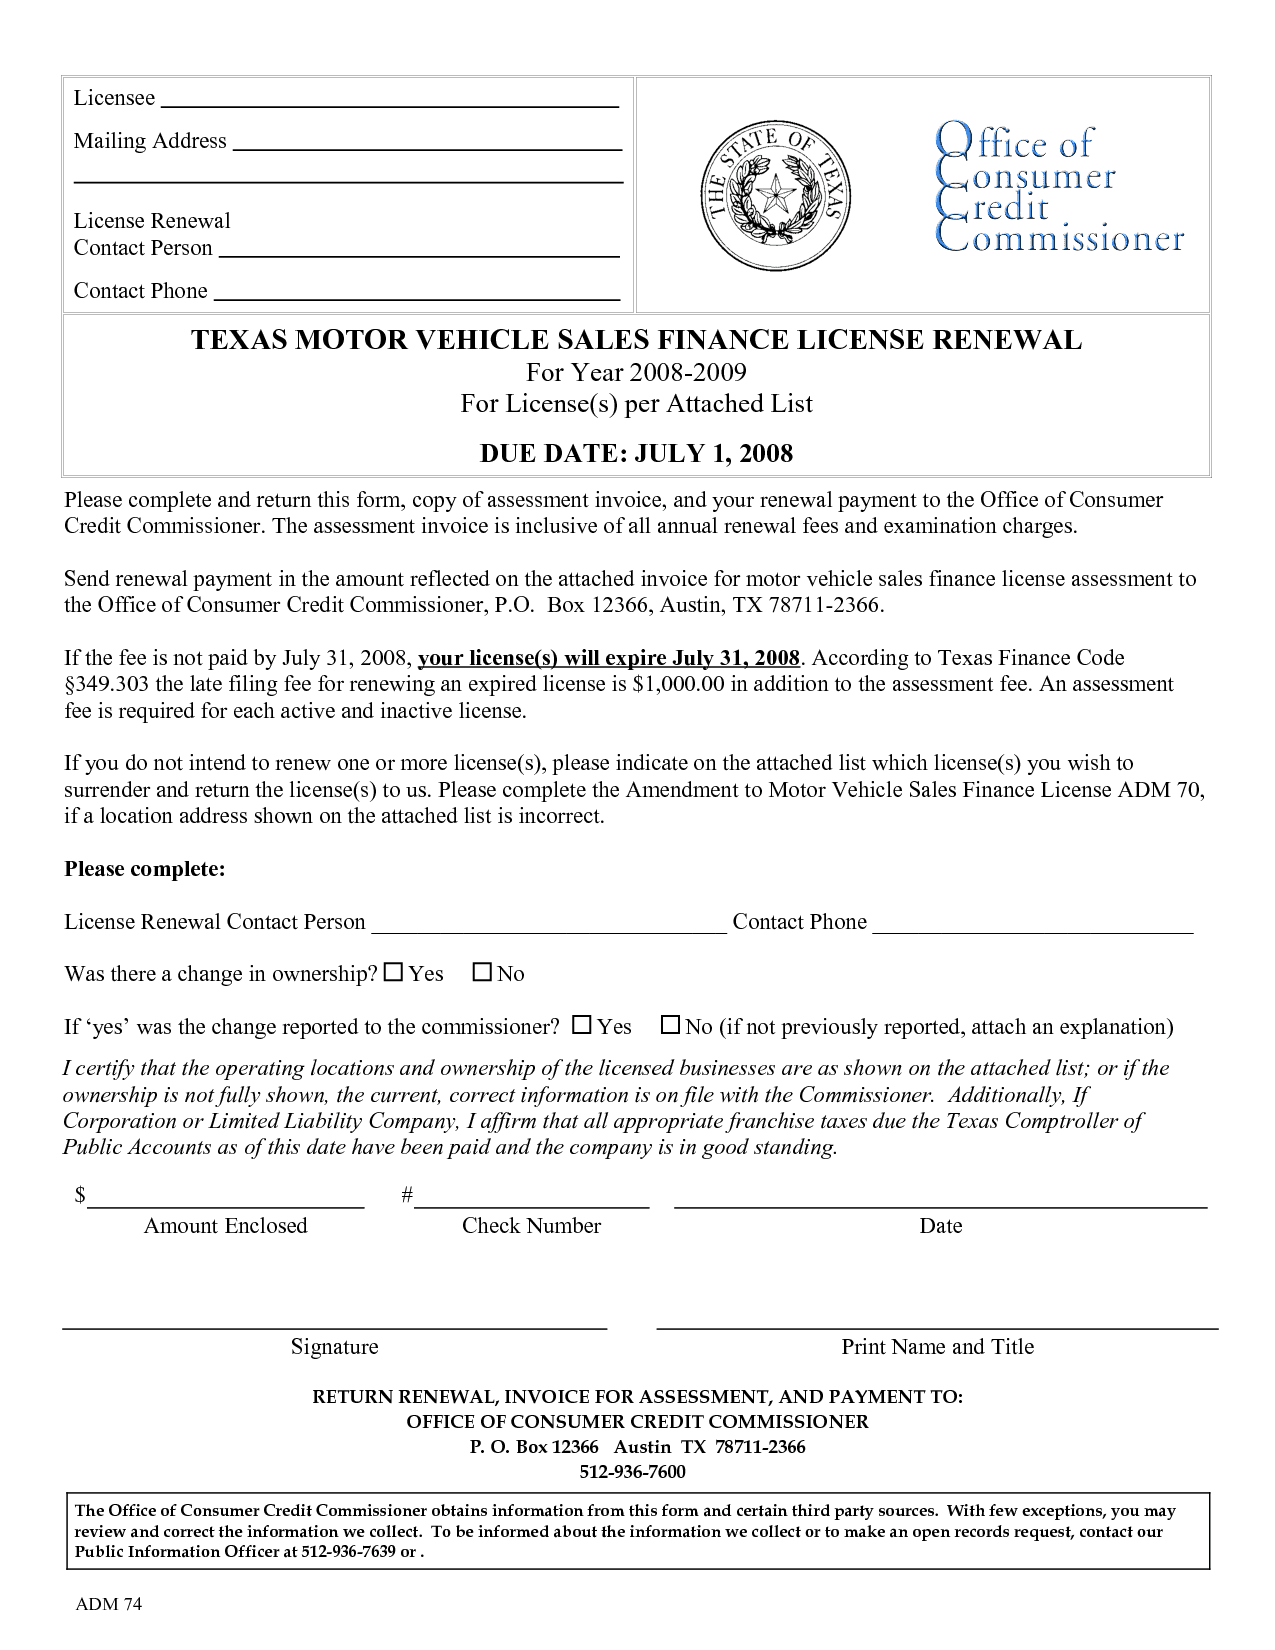 Bill Of Sale Form Texas Trailer And Texas Bill Of Sale Form Download